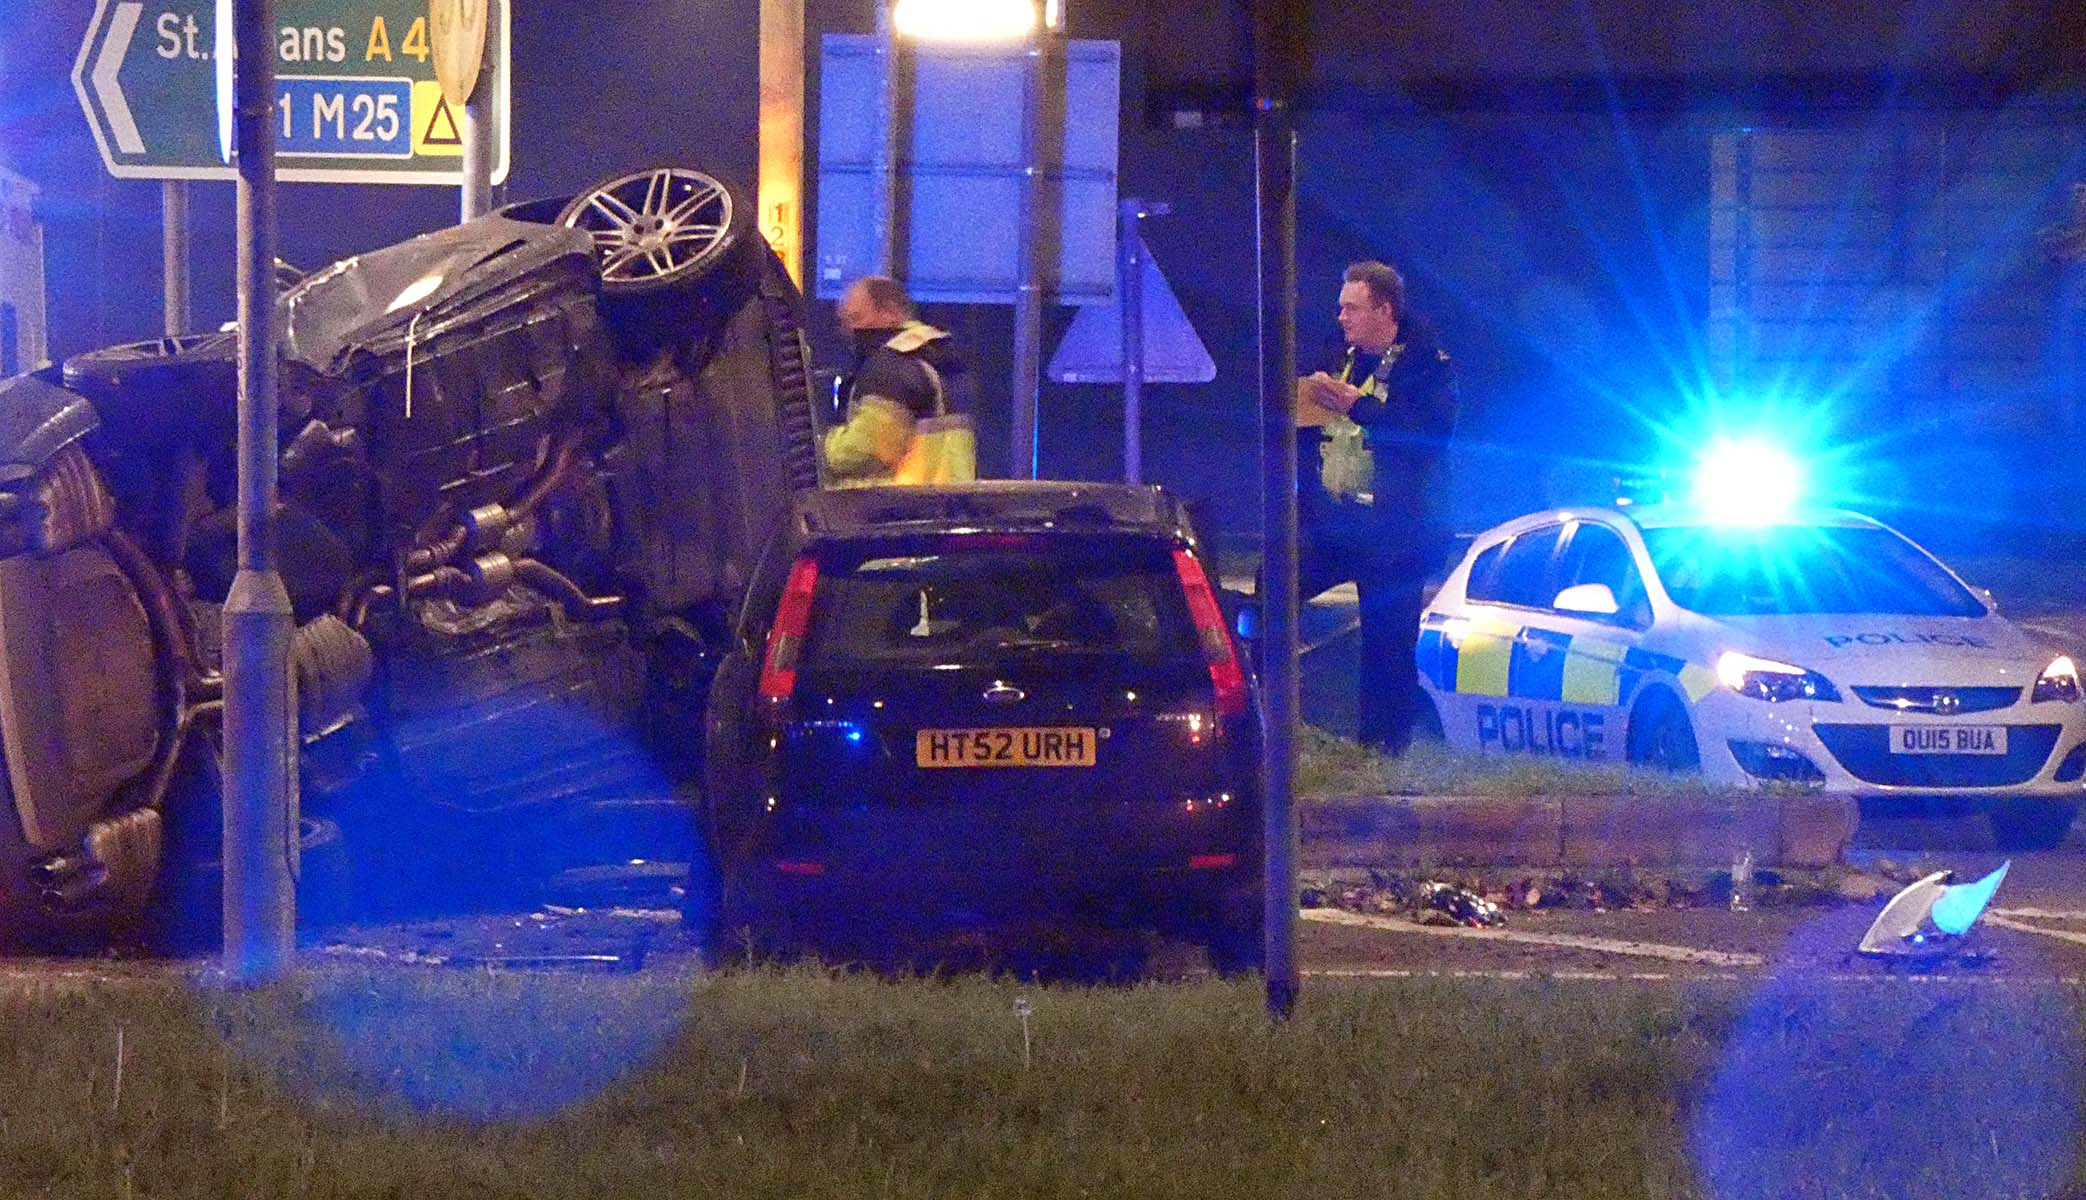 Two Cars Written off in Crash near Hollywood Bowl Watford